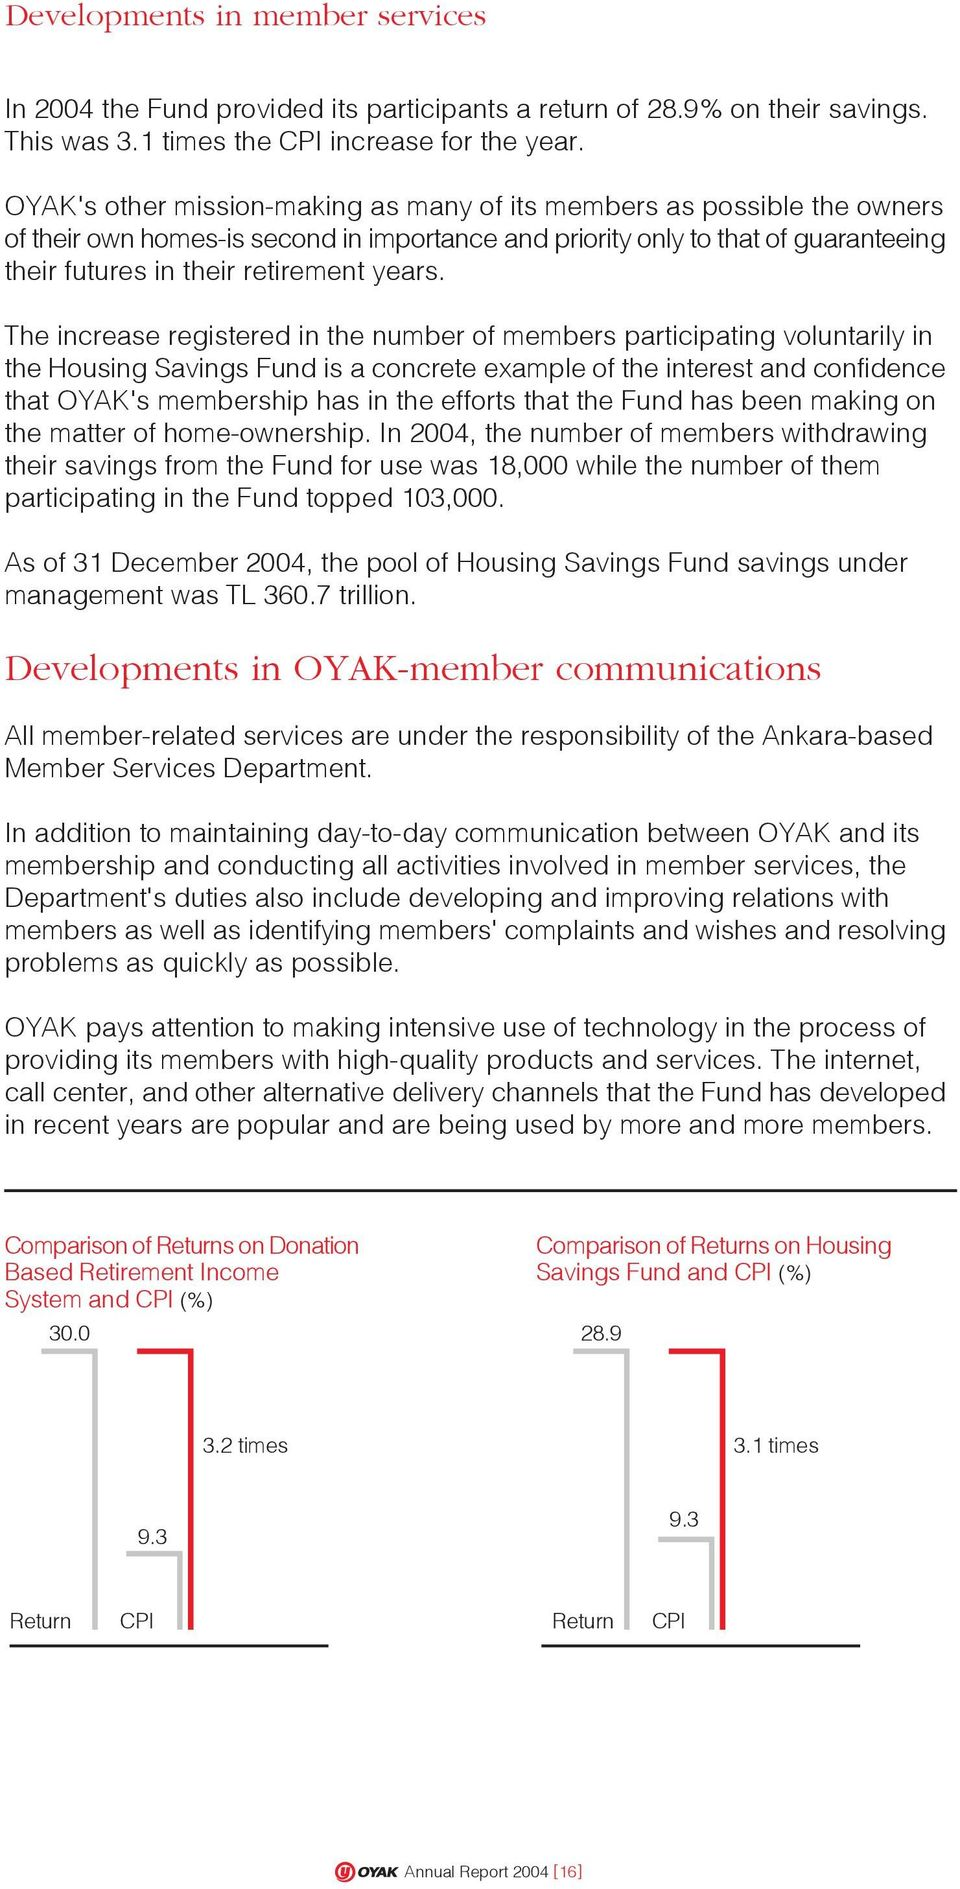 The increase registered in the number of members participating voluntarily in the Housing Savings Fund is a concrete example of the interest and confidence that OYAK's membership has in the efforts